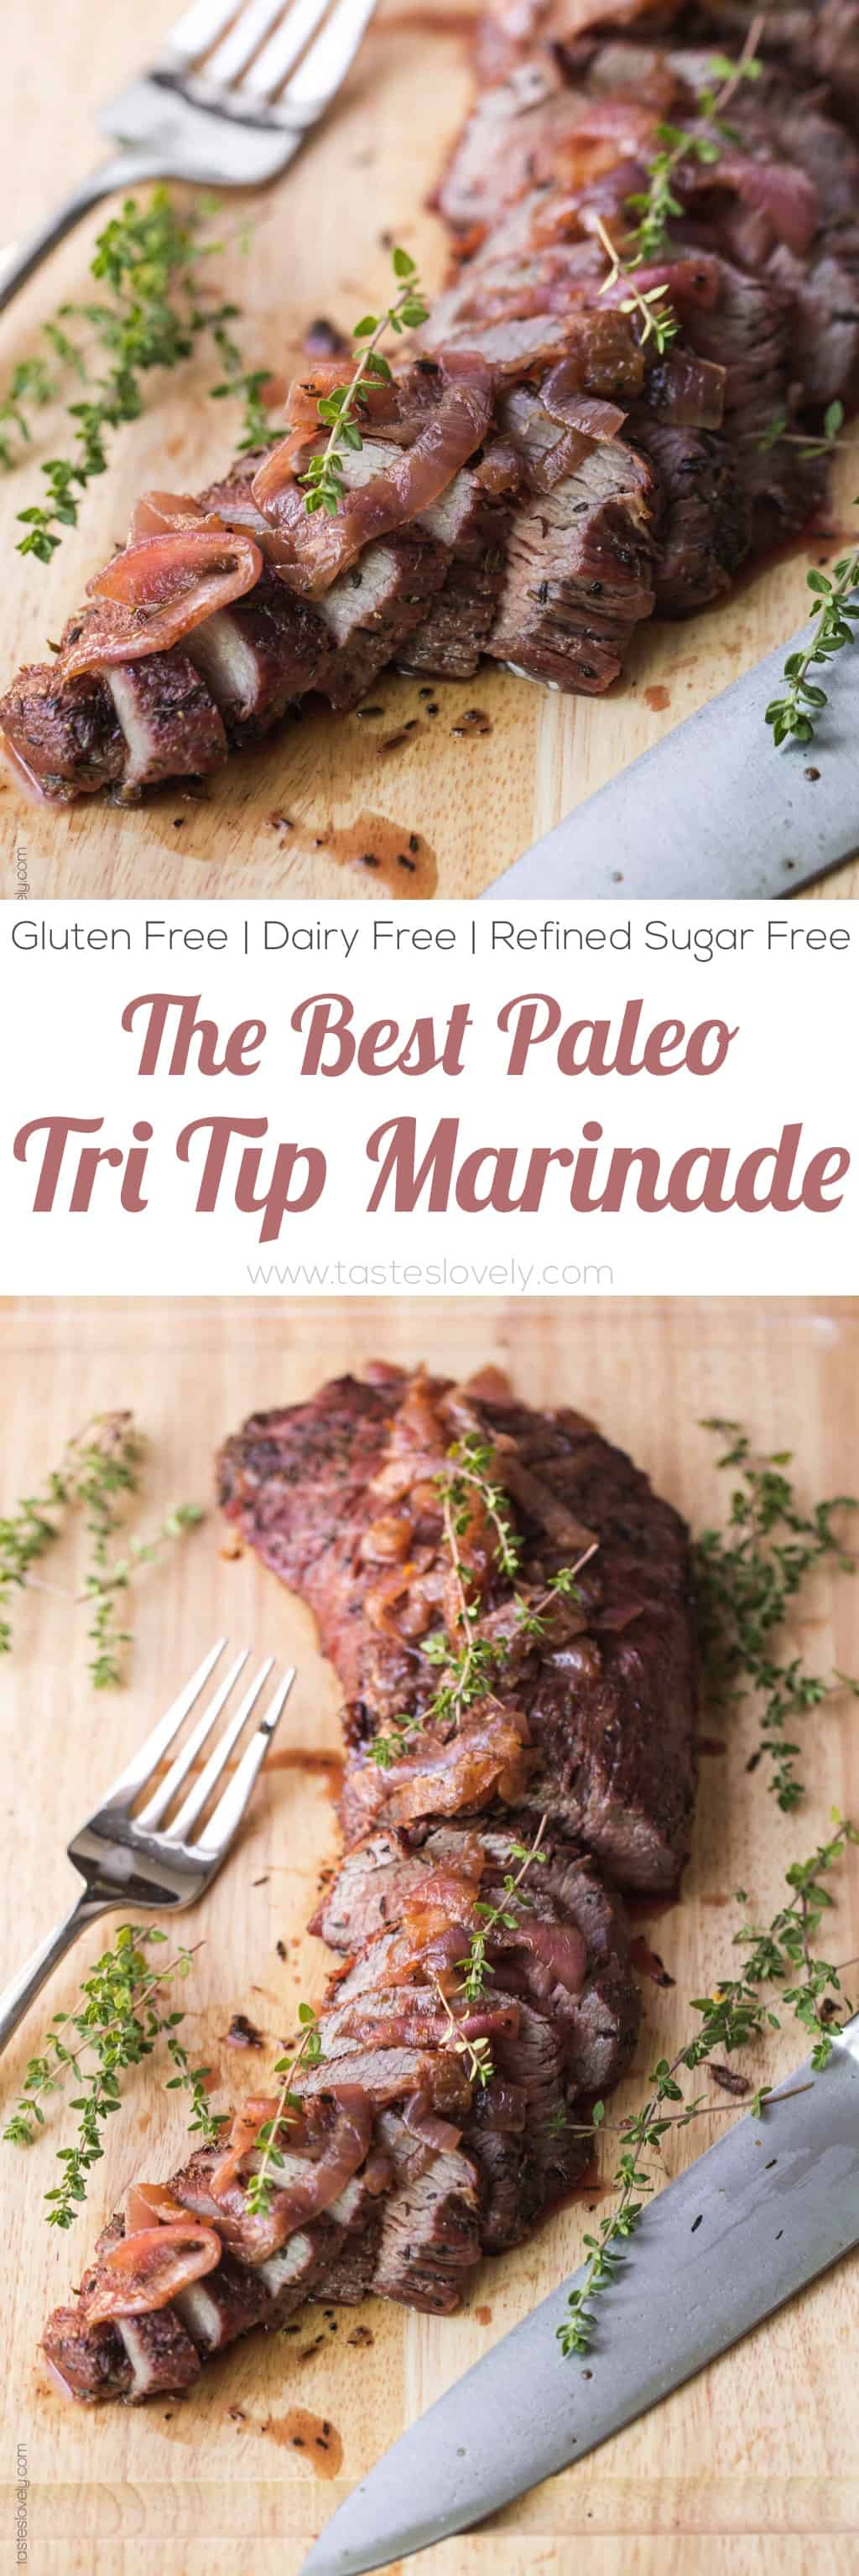 The BEST Paleo Tri Tip Steak Marinade Recipe - just 4 ingredients! Bright, flavorful and delicious. #paleo #glutenfree #grainfree #dairyfree #refinedsugarfree #cleaneating #realfood